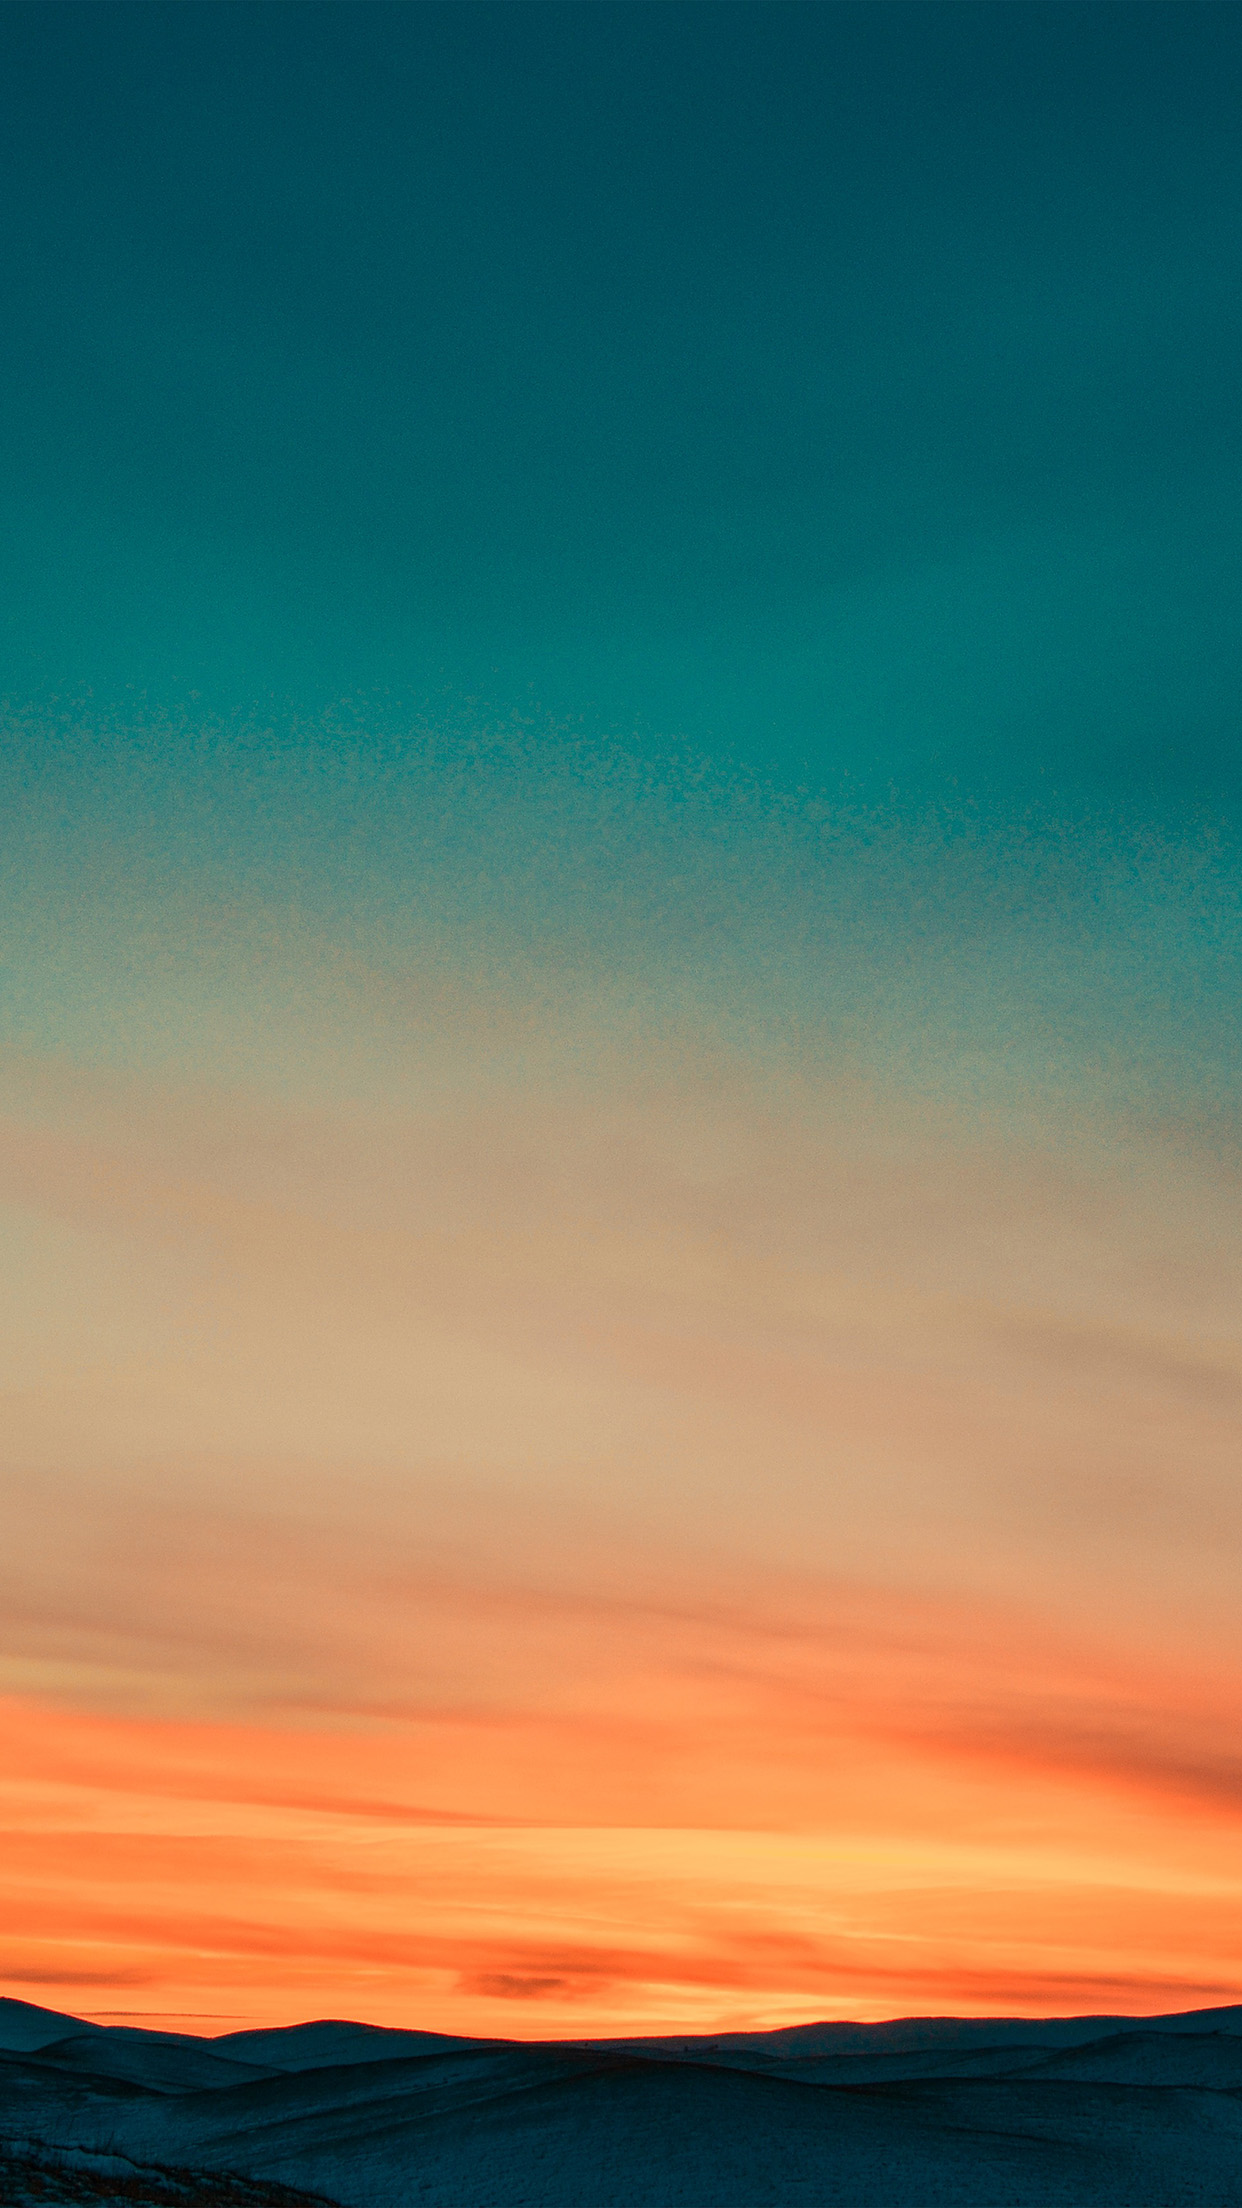 Simple Wallpapers Colors Fall Papers Co Iphone Wallpaper Nb66 Sky Sunset Nature